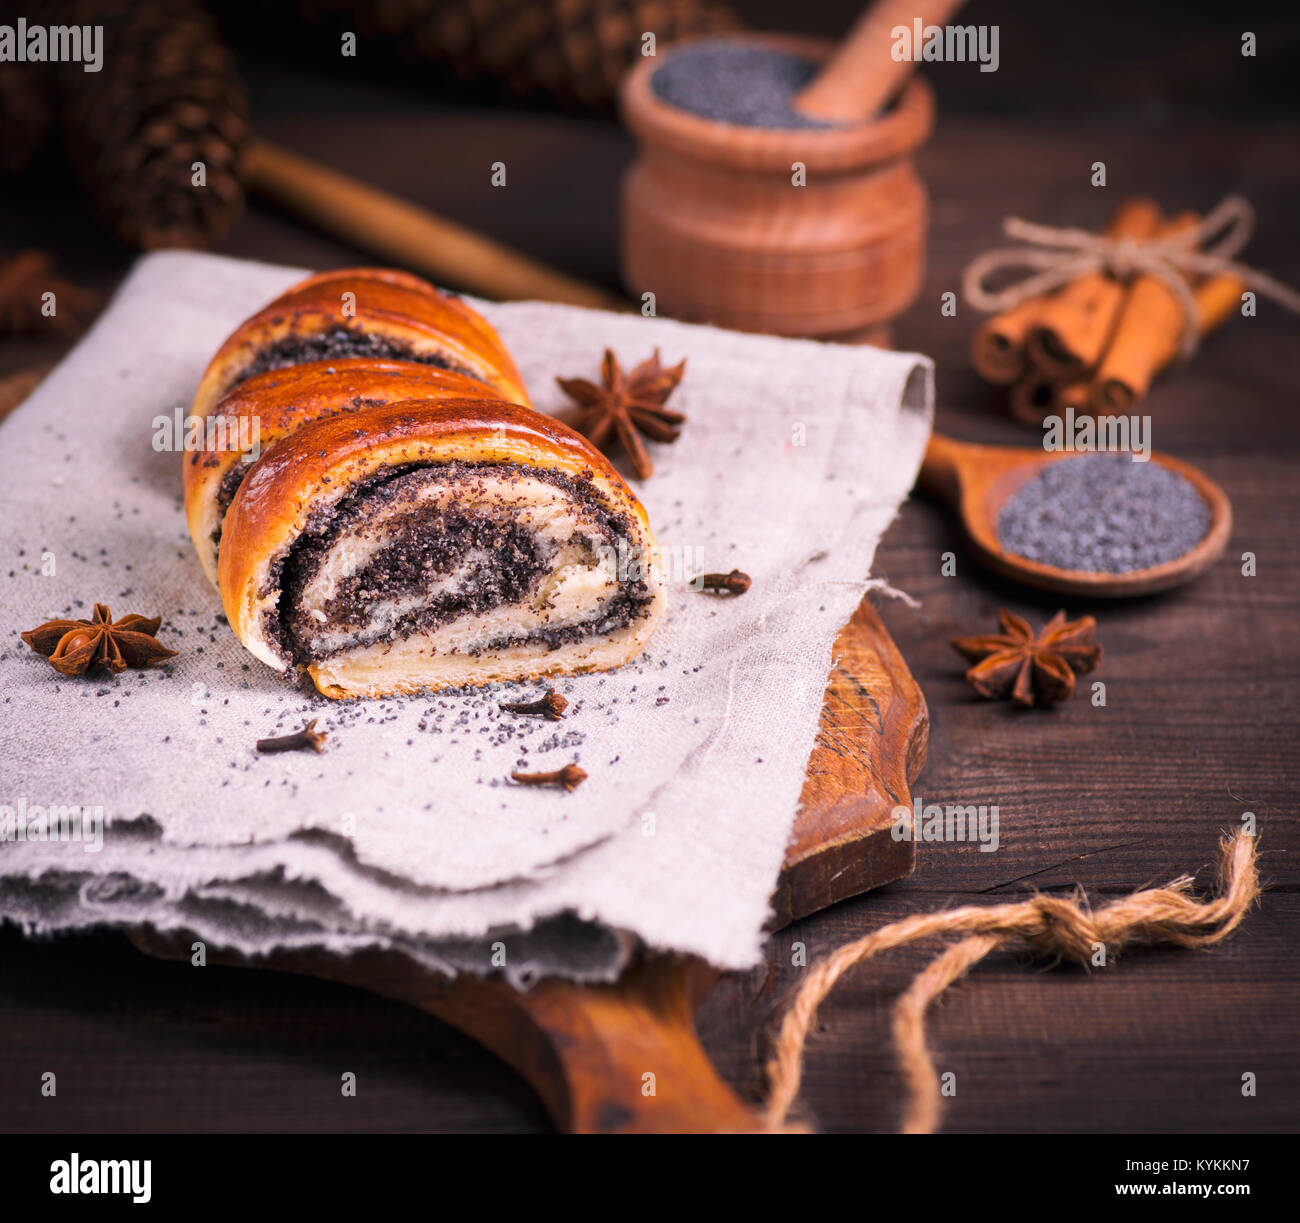 poppy roll on a gray linen napkin and poppy seeds in a wooden spoon, close up - Stock Image